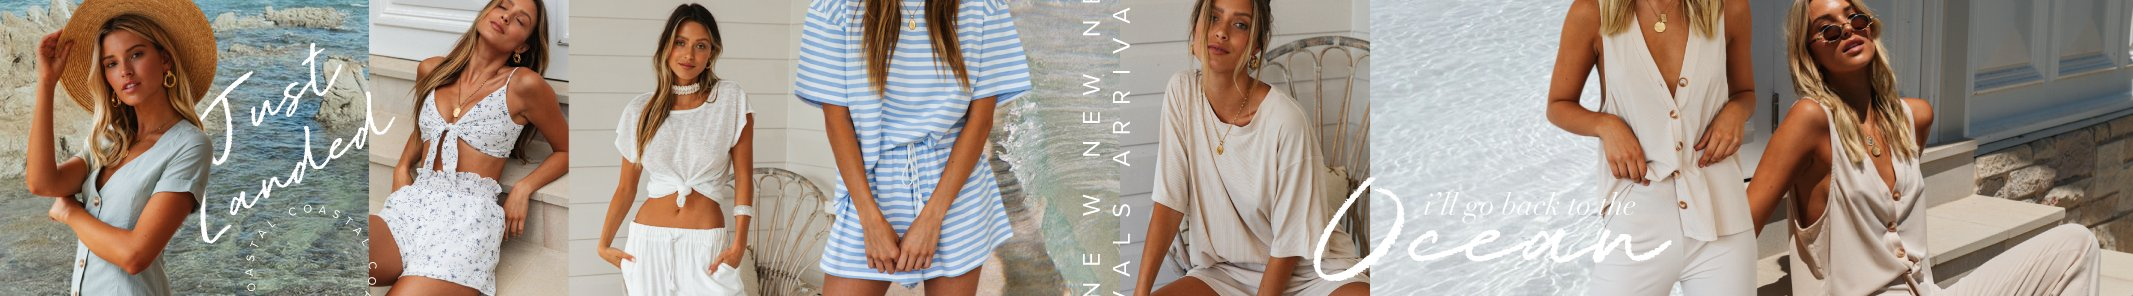 Mura Fashion - Australia Lookbook